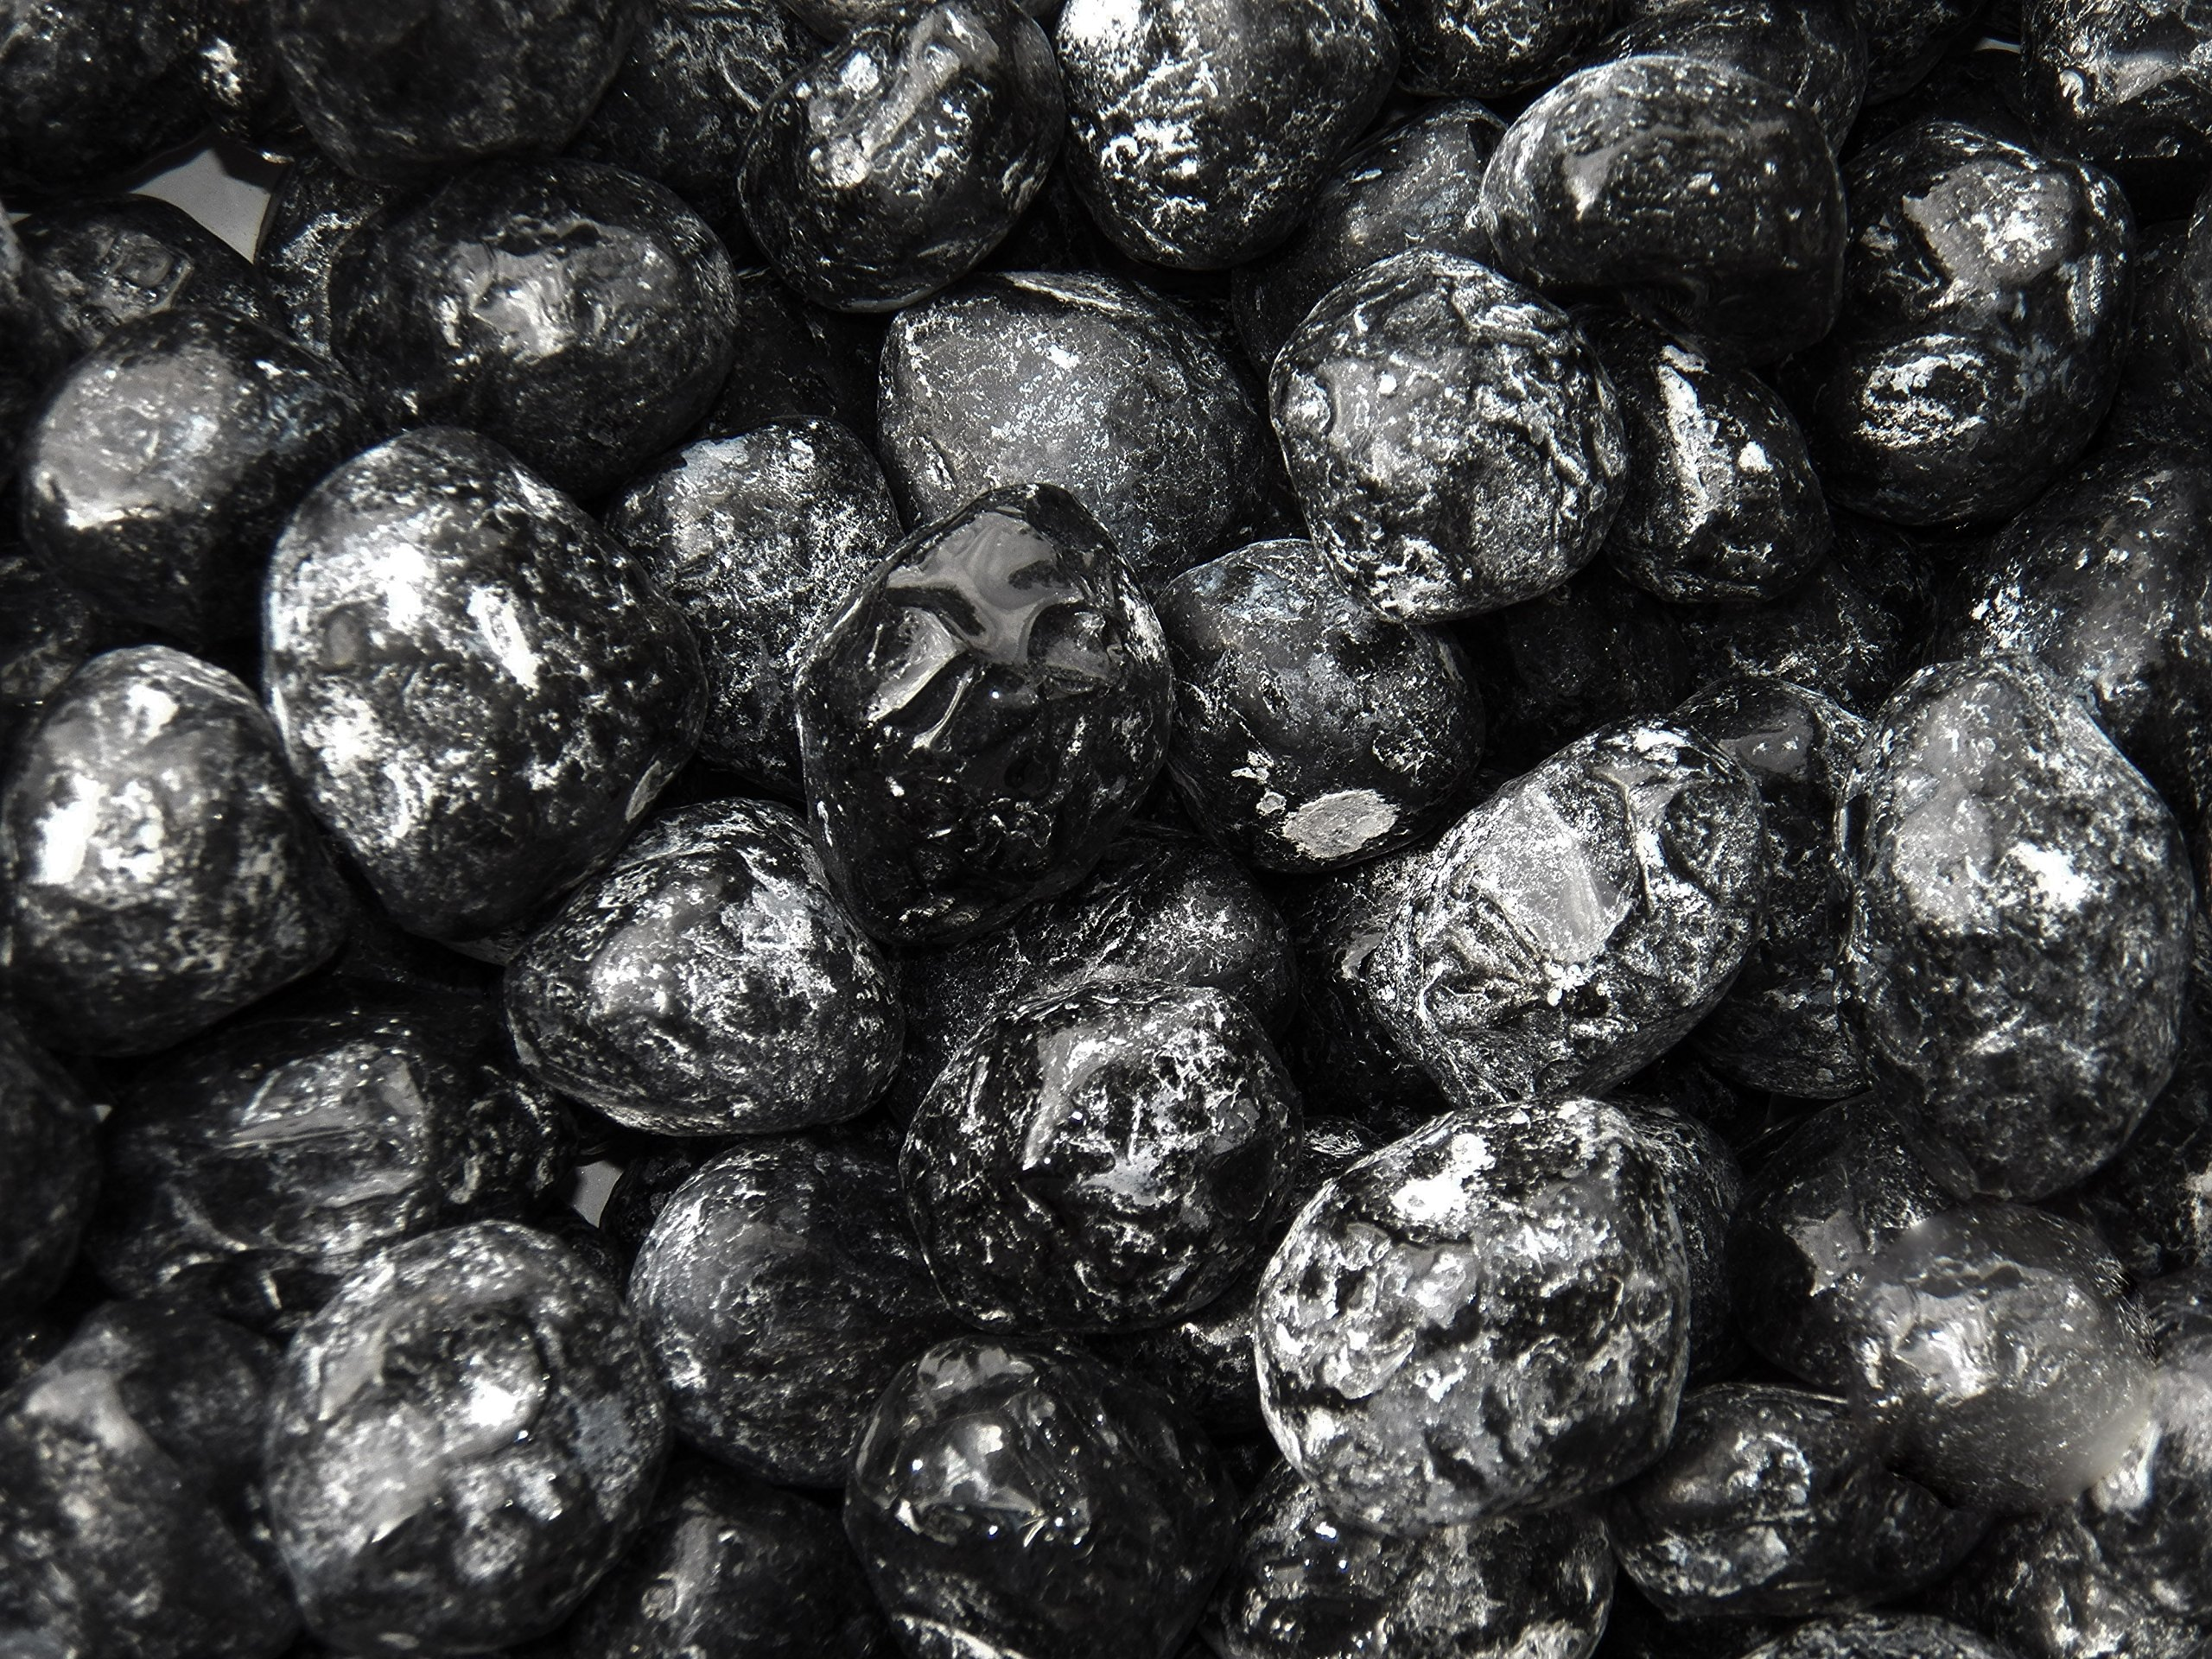 Fundamental Rockhound Products: Natural Extra Large APACHE TEARS Volcanic Glass Black Obsidian Bulk Rock for Tumbling Metaphysical Gemstones Healing Crystals Wholesale Lot ... Clear Negativity, Protect from Negative Energies (1 lb)